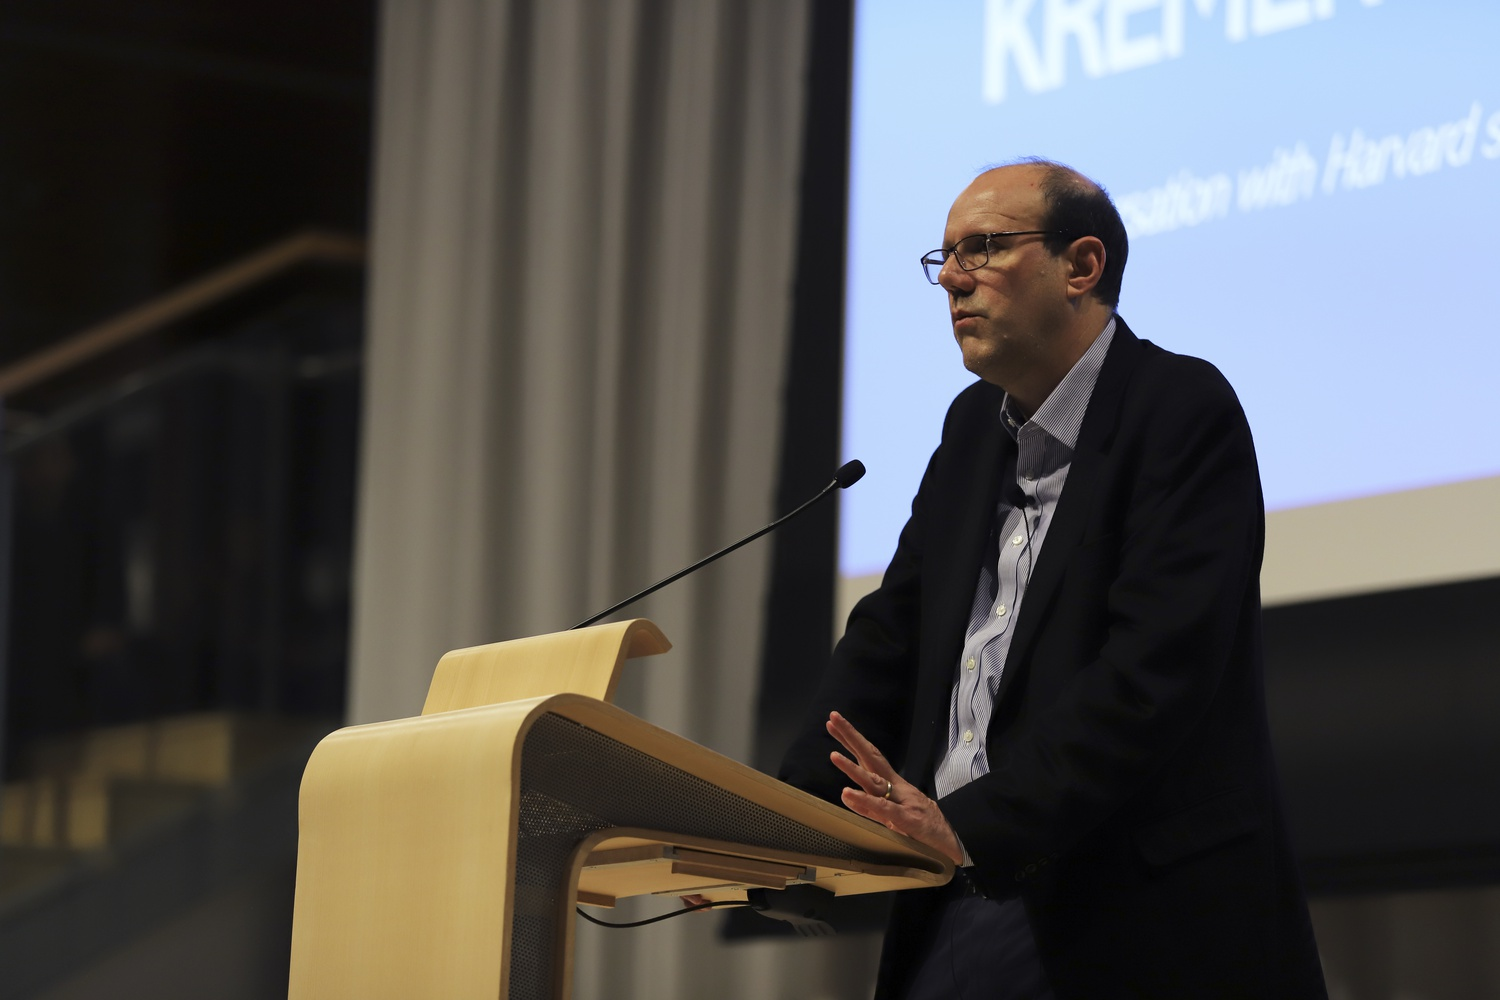 Economics Professor and 2019 Nobel Laureate in Economics Michael Kremer '85 converses with students during an event hosted by the Center for International Development in the Smith Campus Center Tuesday evening.